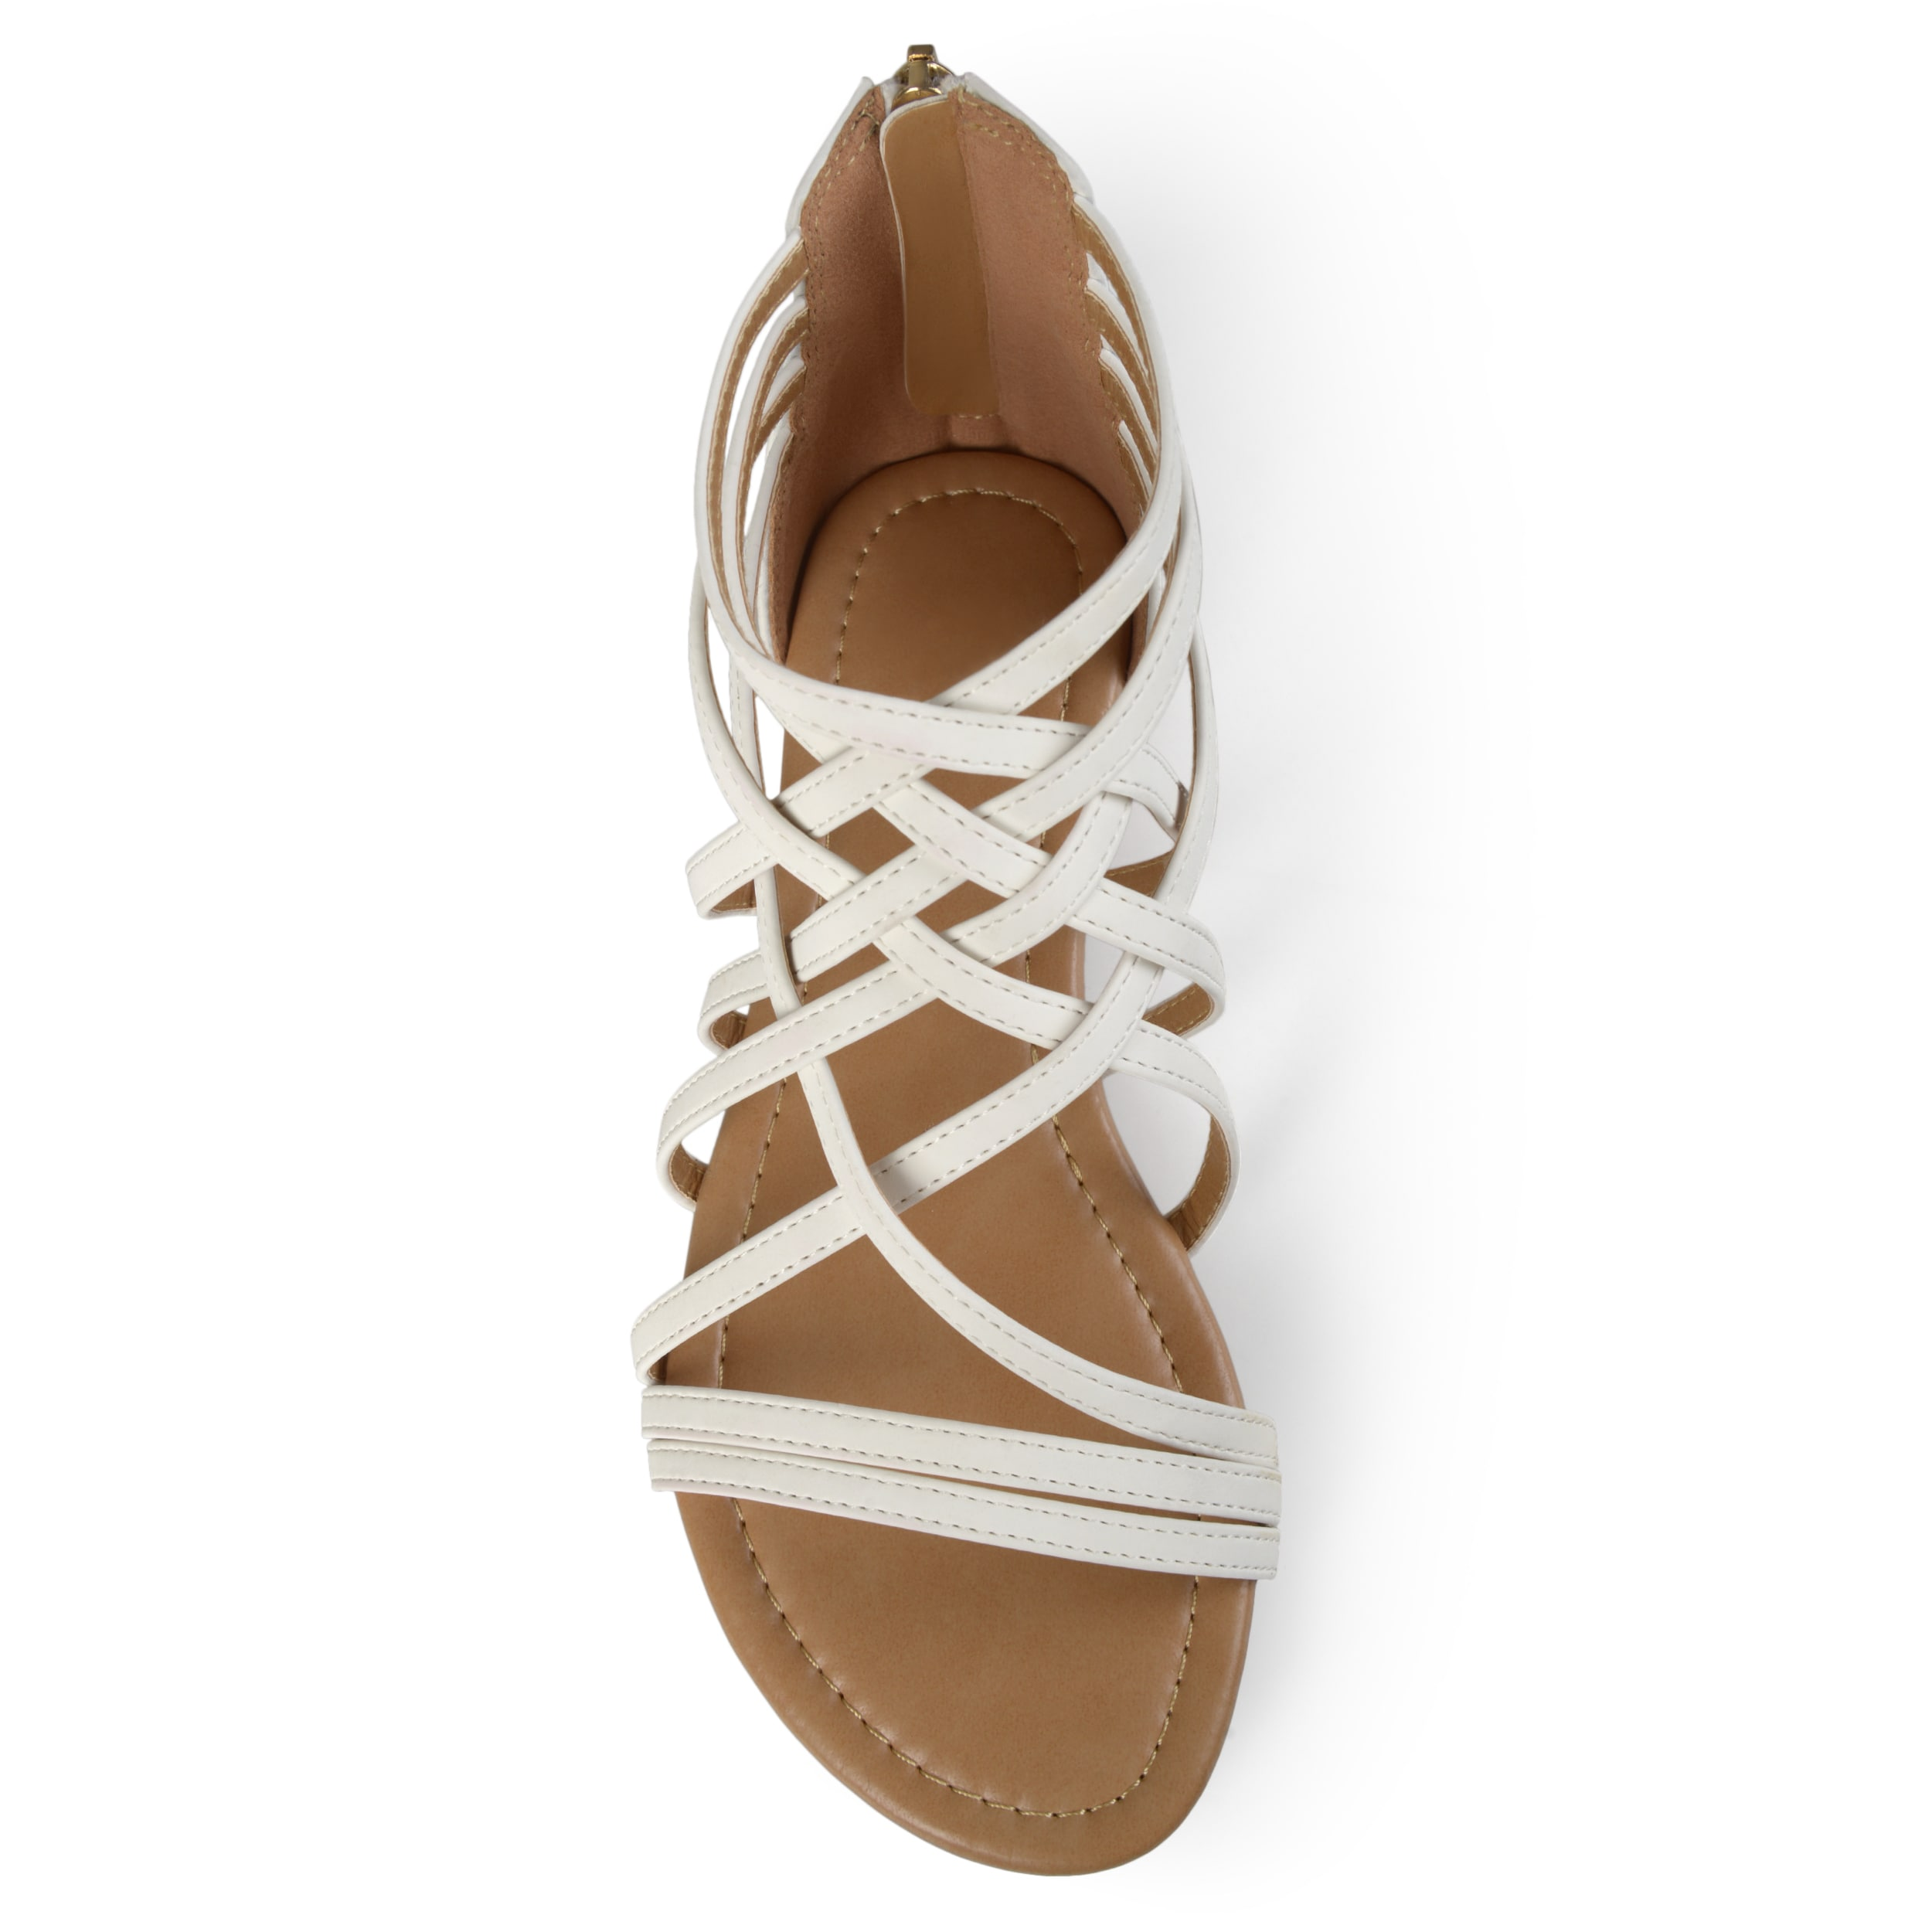 5800195f4967 Shop Journee Collection Women s  Hanni  Flat Gladiator Sandals - Free  Shipping On Orders Over  45 - Overstock - 13989400